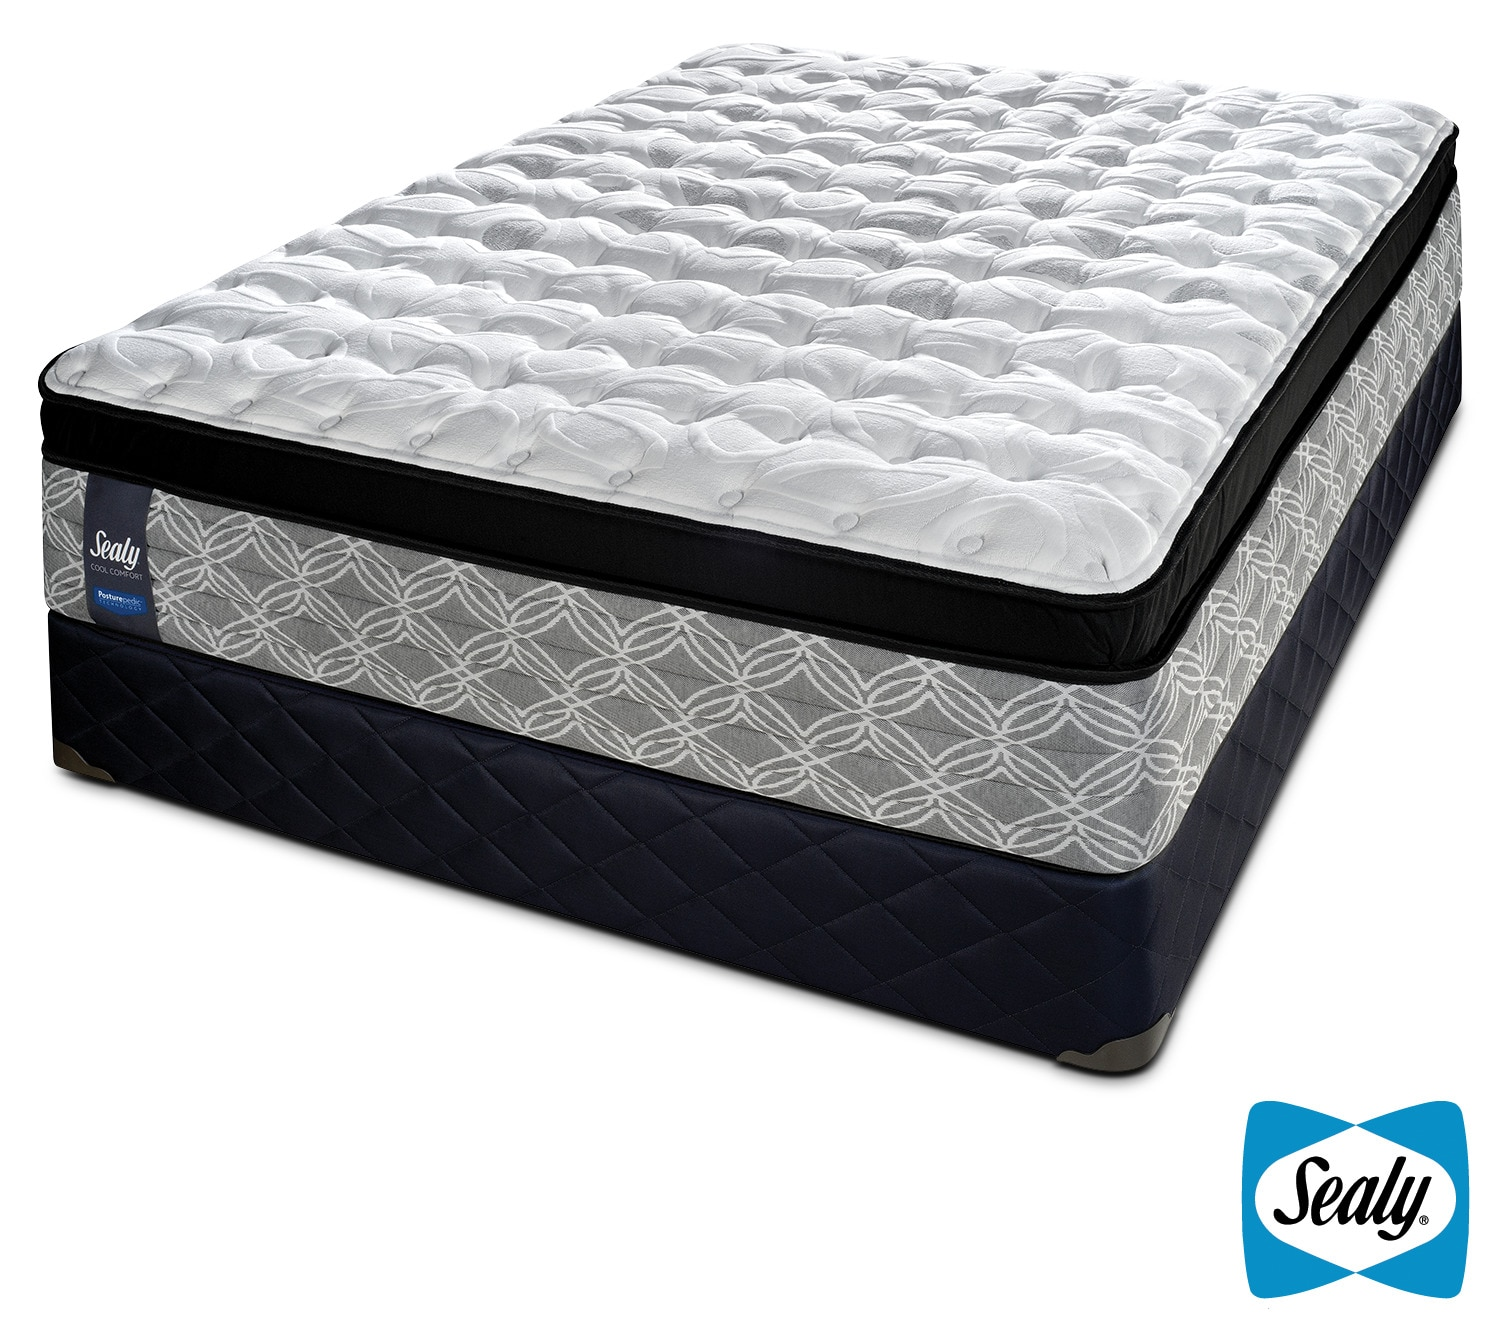 Sealy Sundown Firm Queen Mattress and Boxspring Set